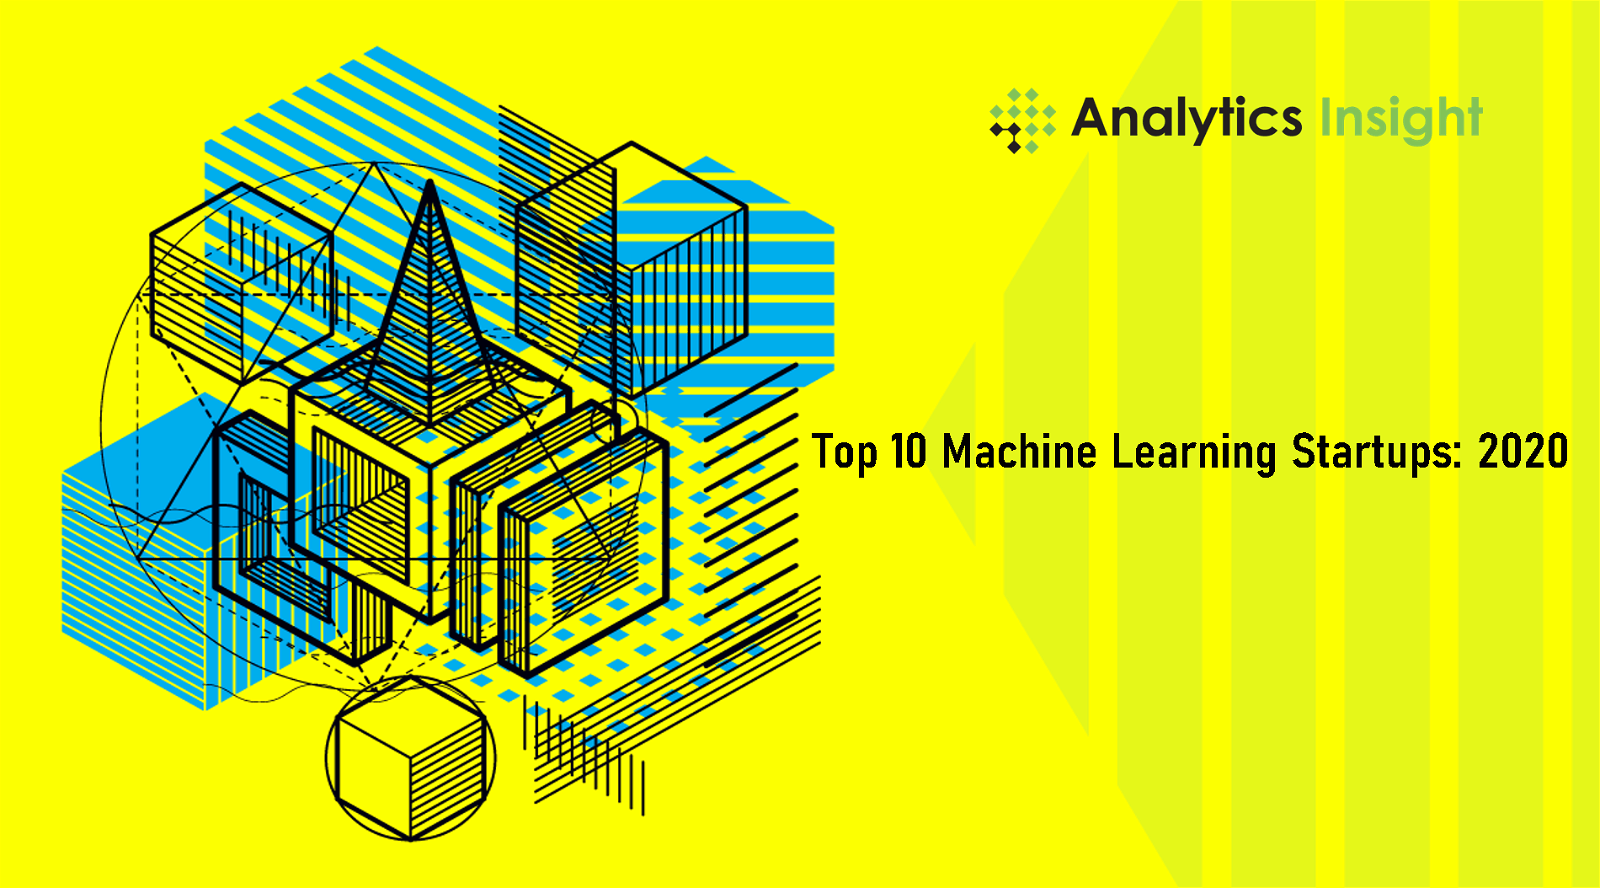 Top 10 Machine Learning Startups of 2020